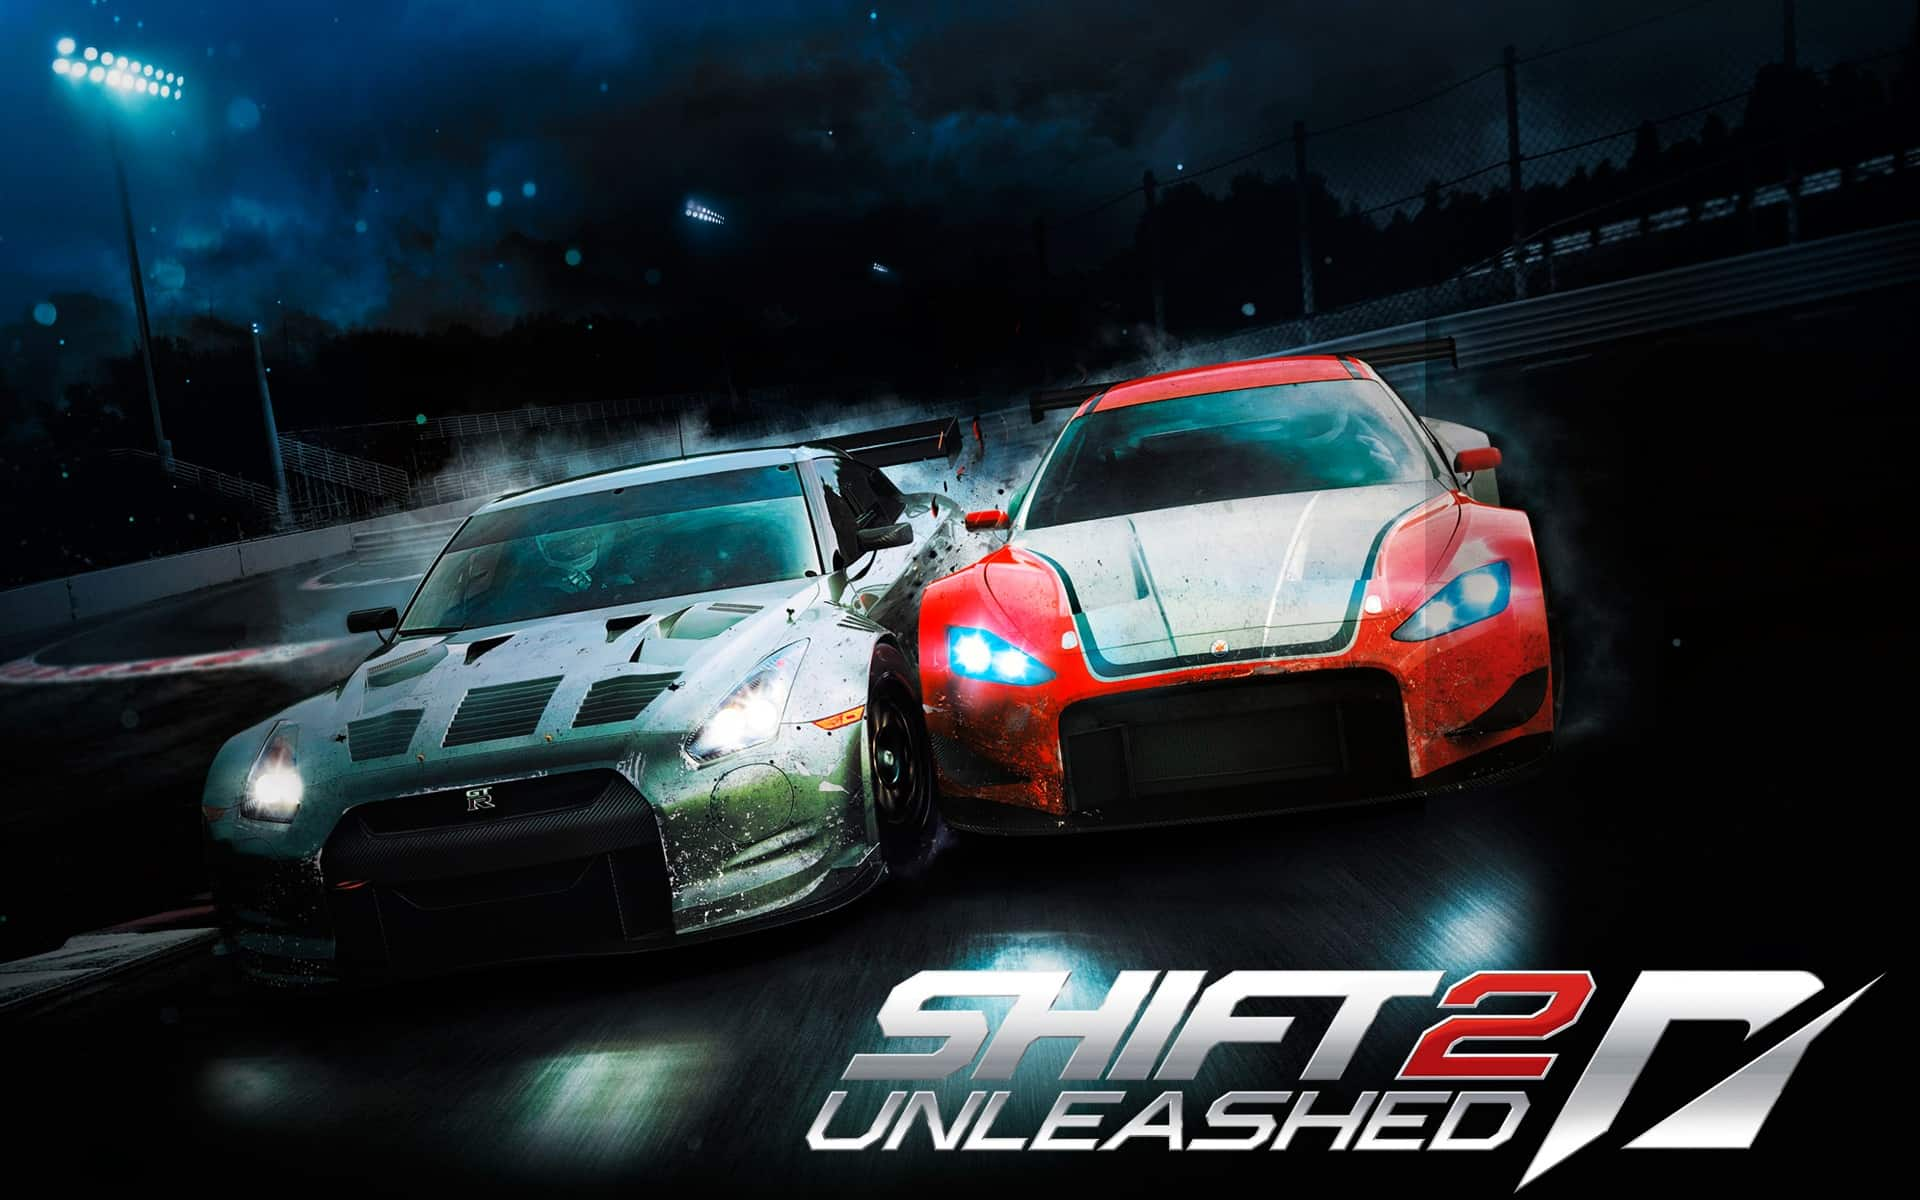 need.for.speed.shift.2.unleashed.2011.pc serial number